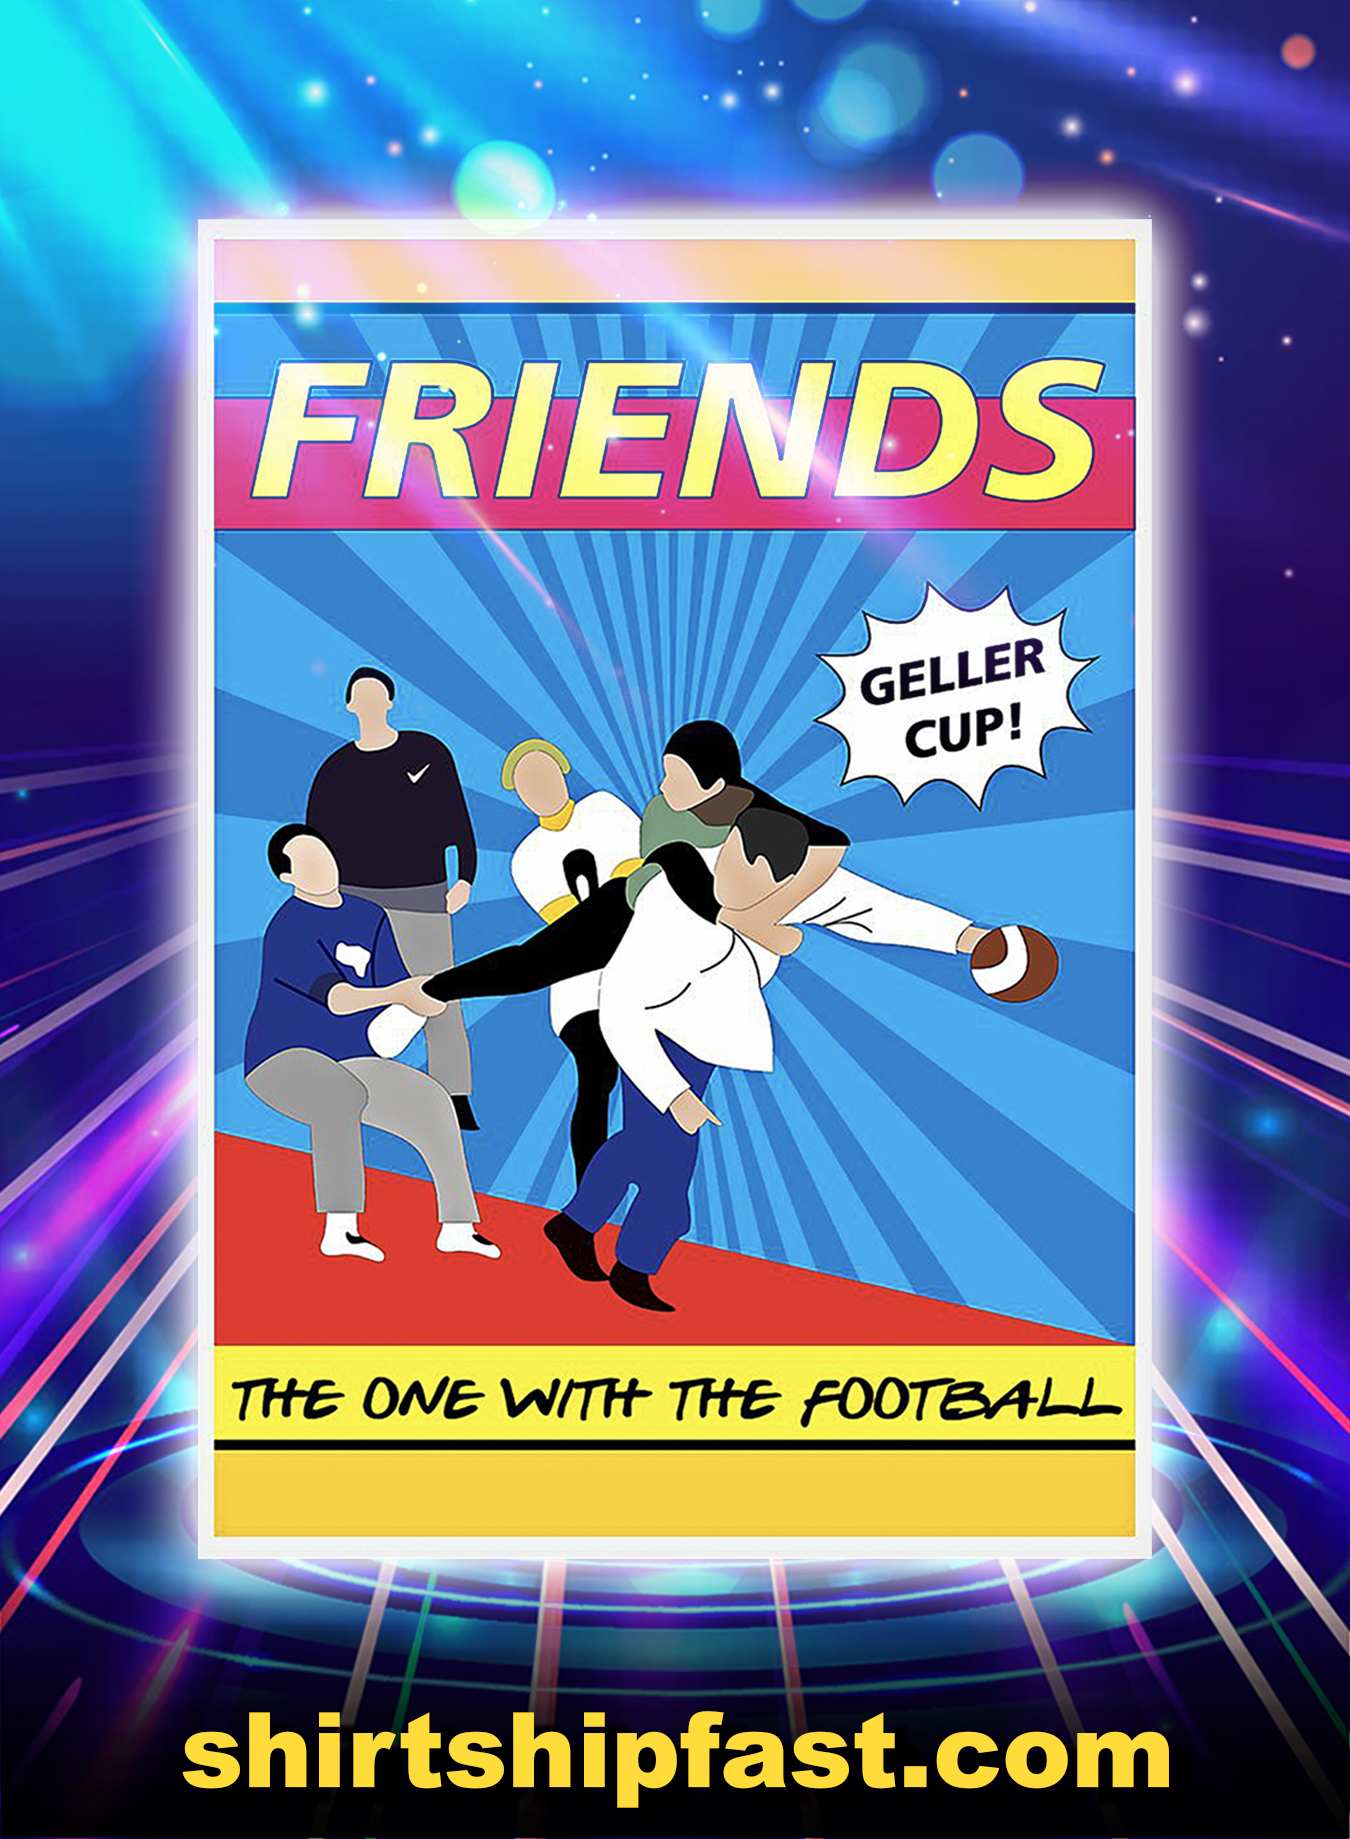 Friends geller cup the one with the football poster - A3